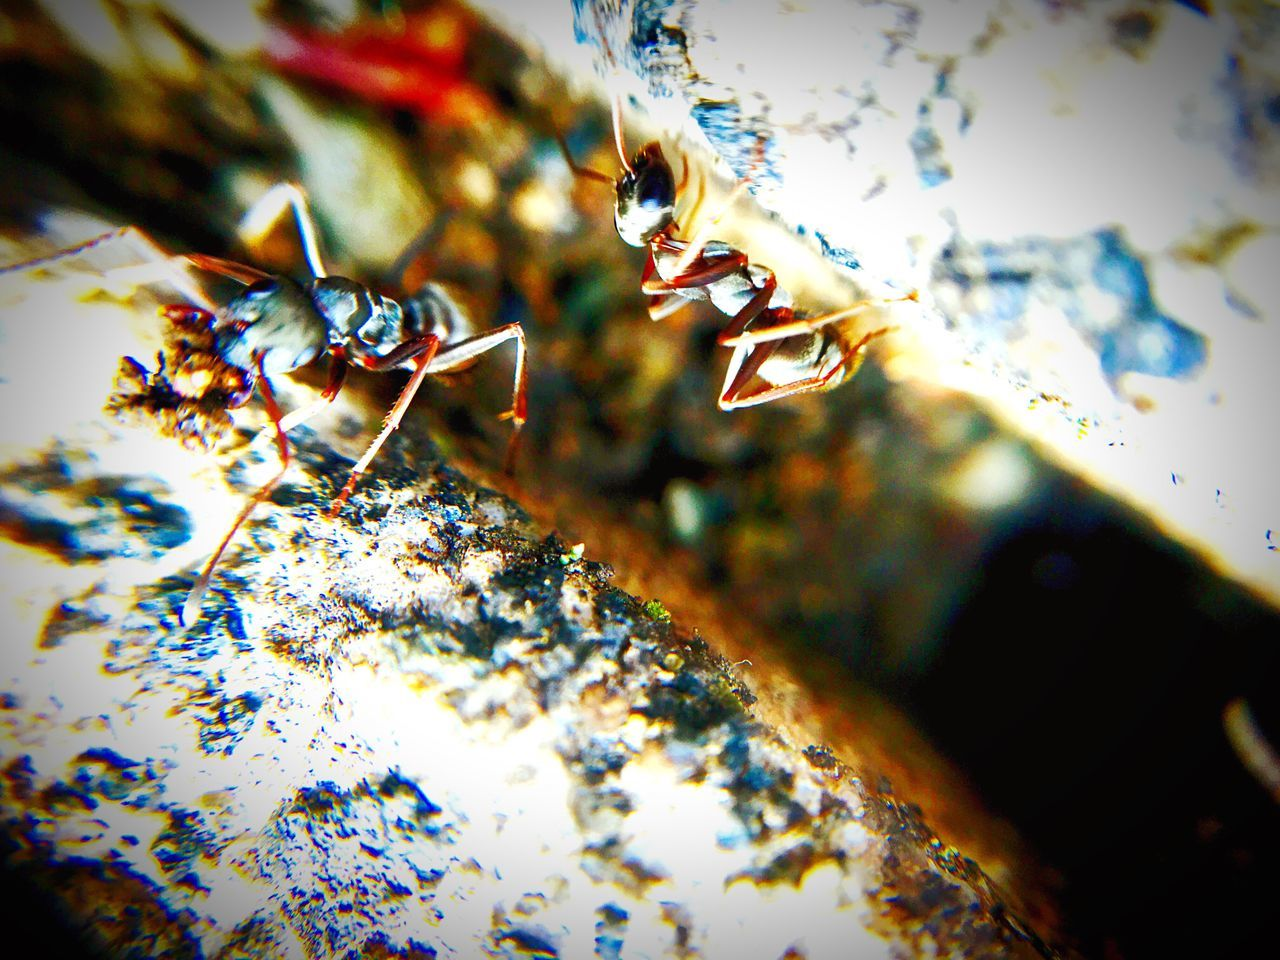 animal themes, insect, animals in the wild, close-up, one animal, no people, animal wildlife, day, bee, outdoors, nature